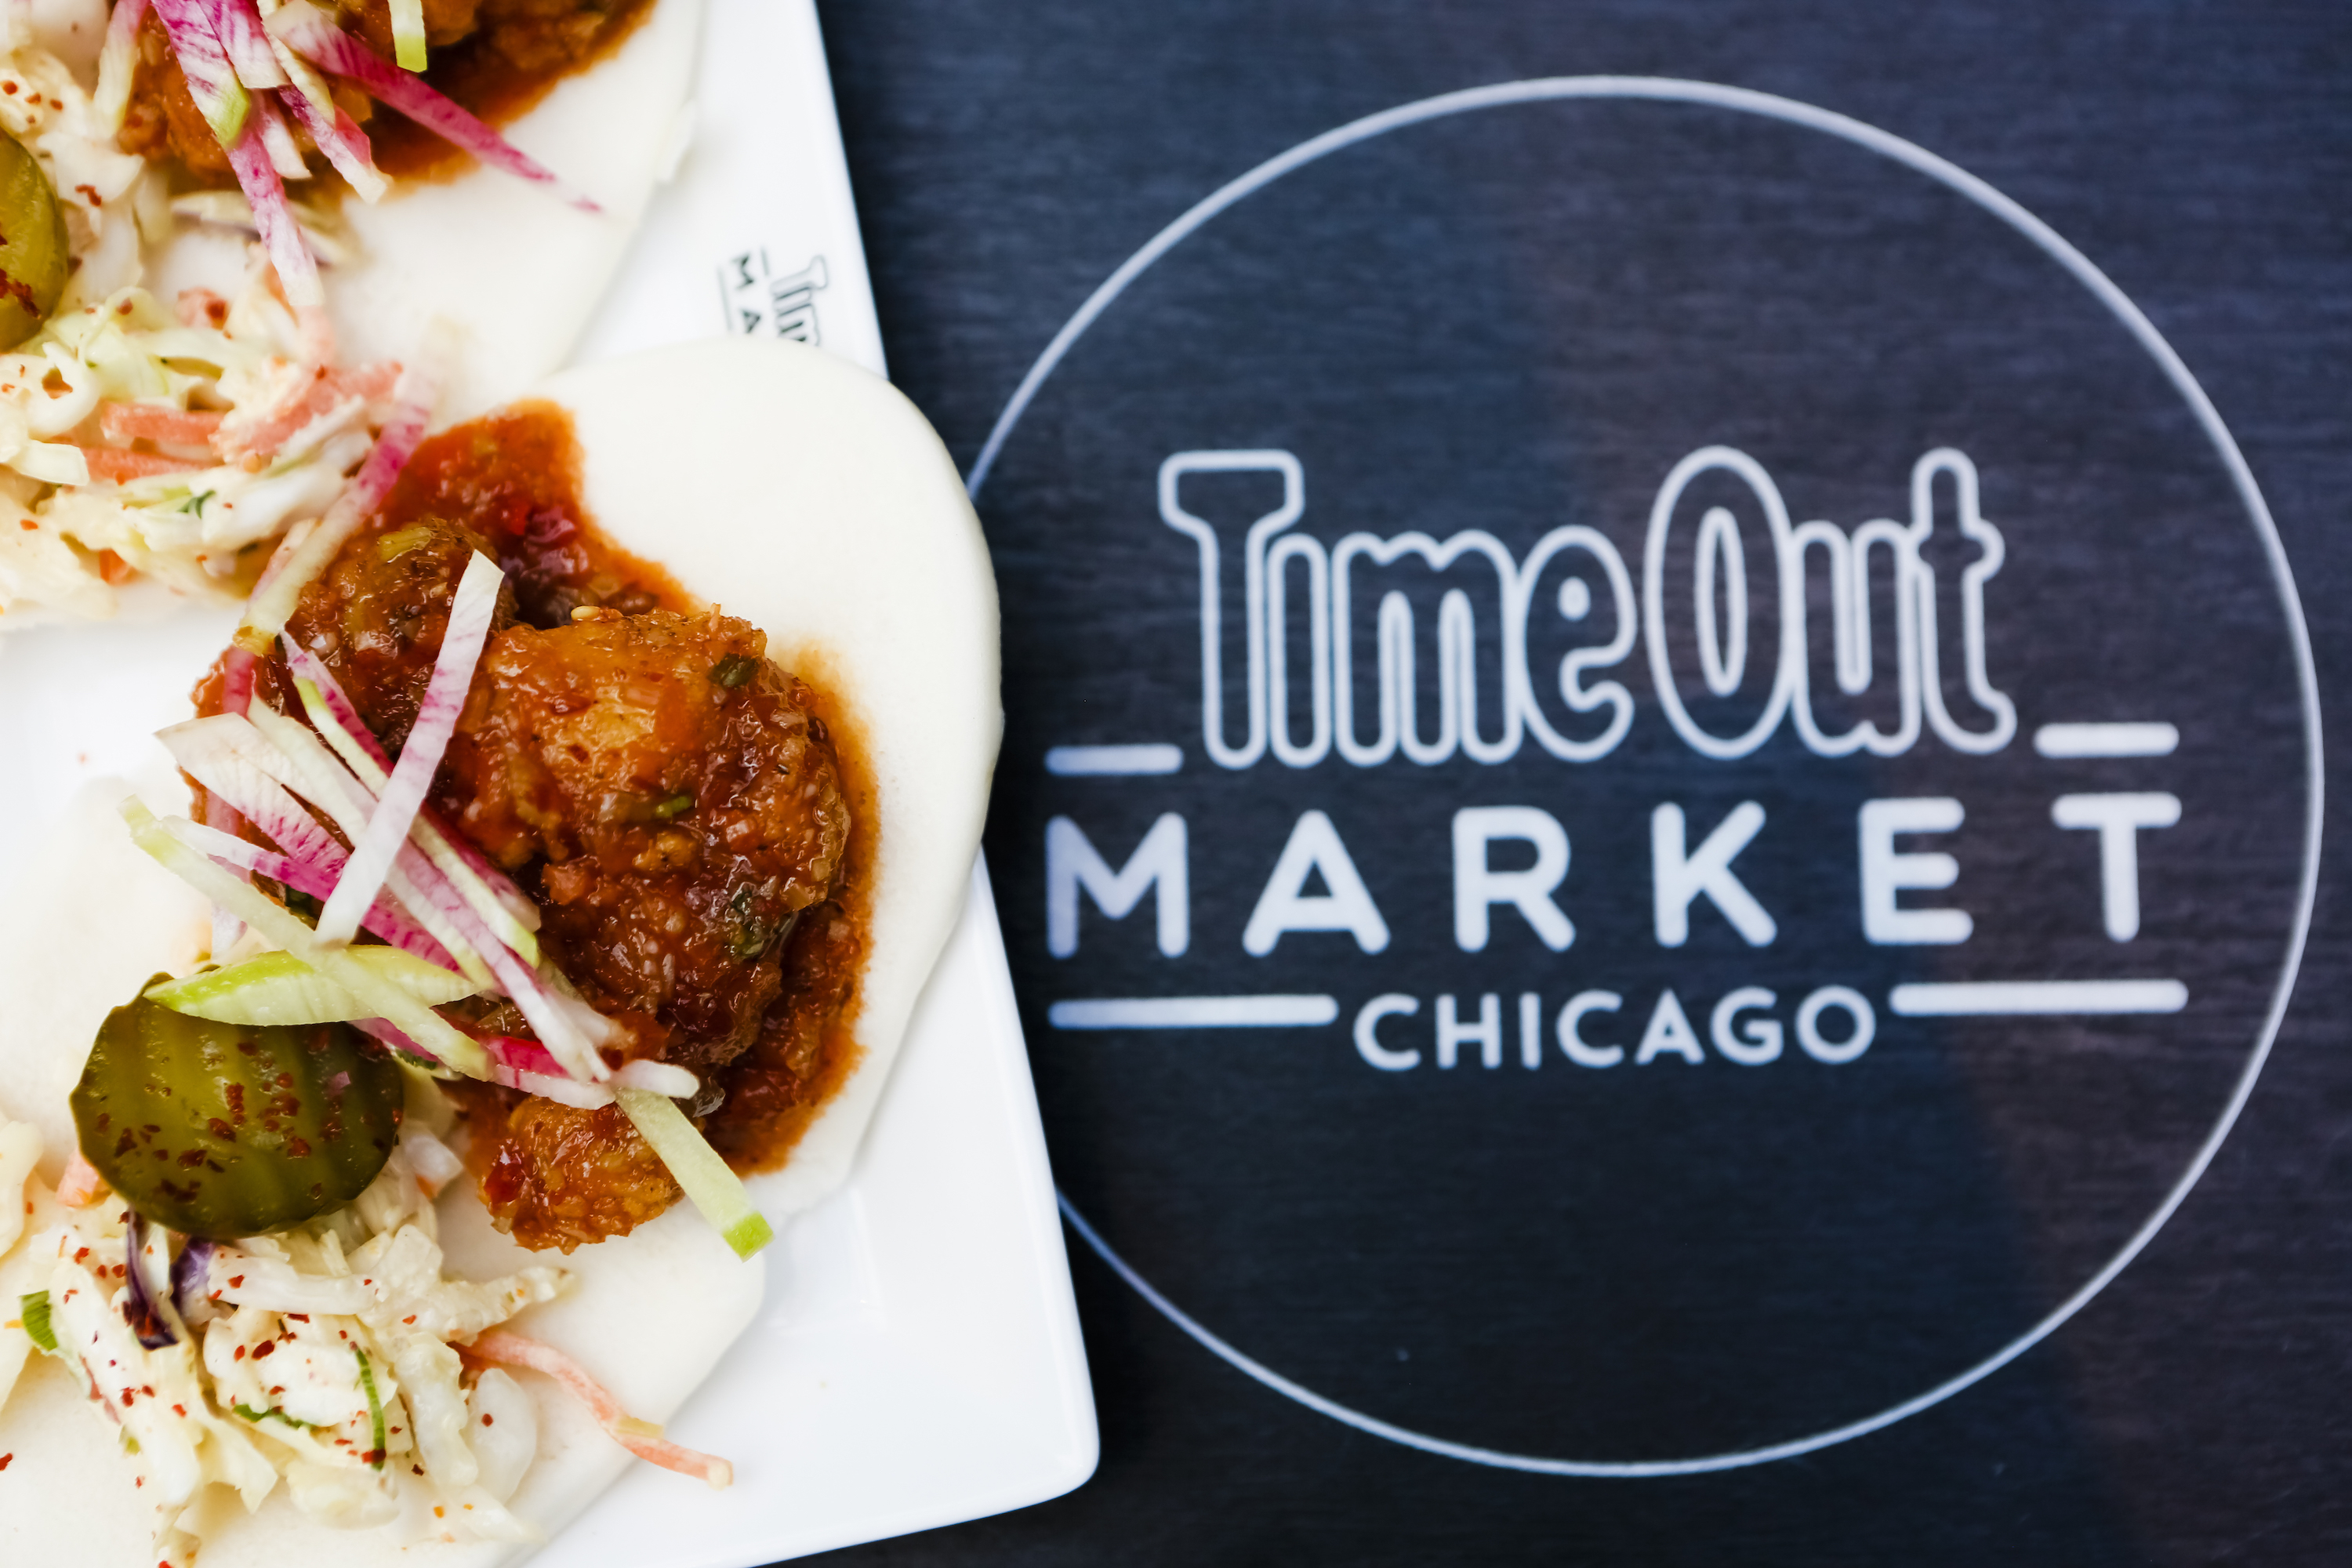 You can now order delivery from Time Out Market Chicago